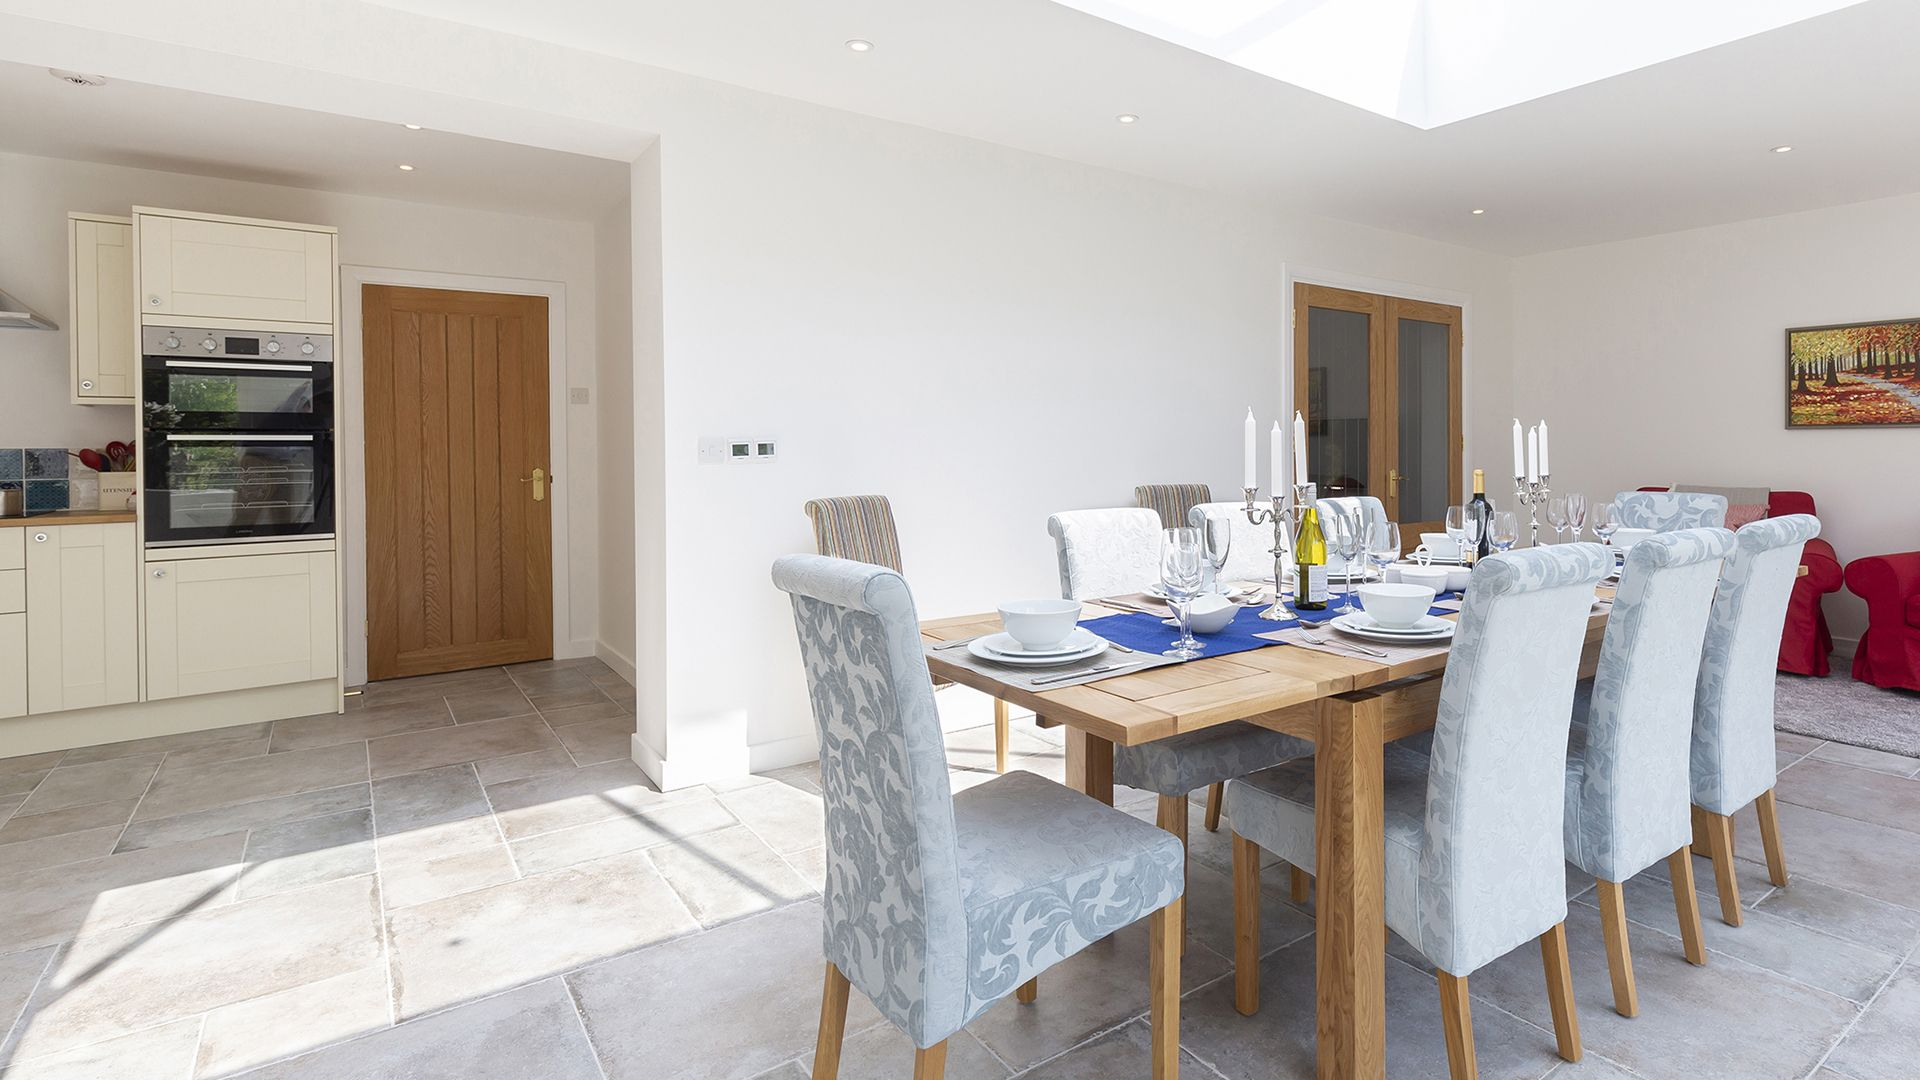 Dining area and kitchen, South Winds, Bolthole Retreats